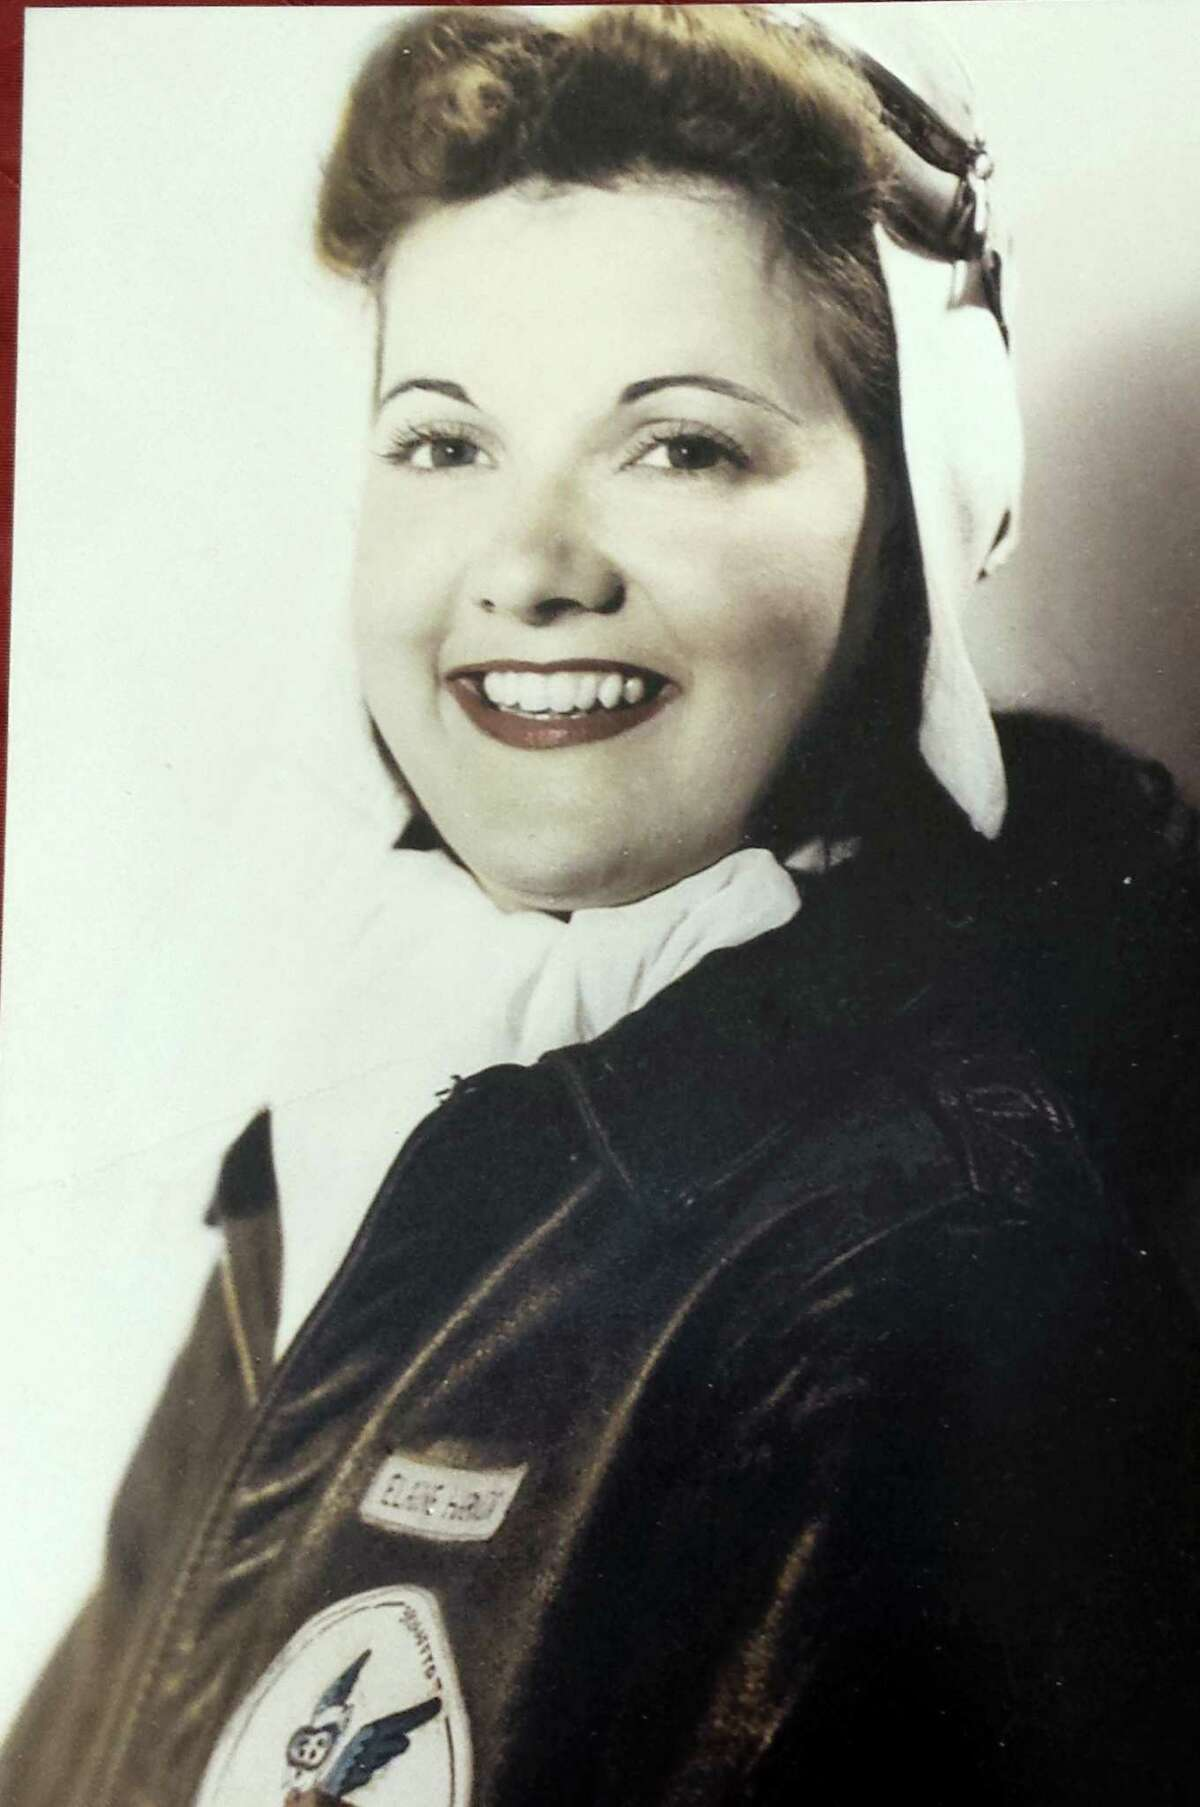 This Women Airforce Service Pilots (WASP), provided by the family, taken in the 1940s, shows Elaine Harmon. The ashes of World War II veteran Harmon are sitting in a closet in her daughter's home, where they will remain until they can go where her family says is her rightful resting place: Arlington National Cemetery.